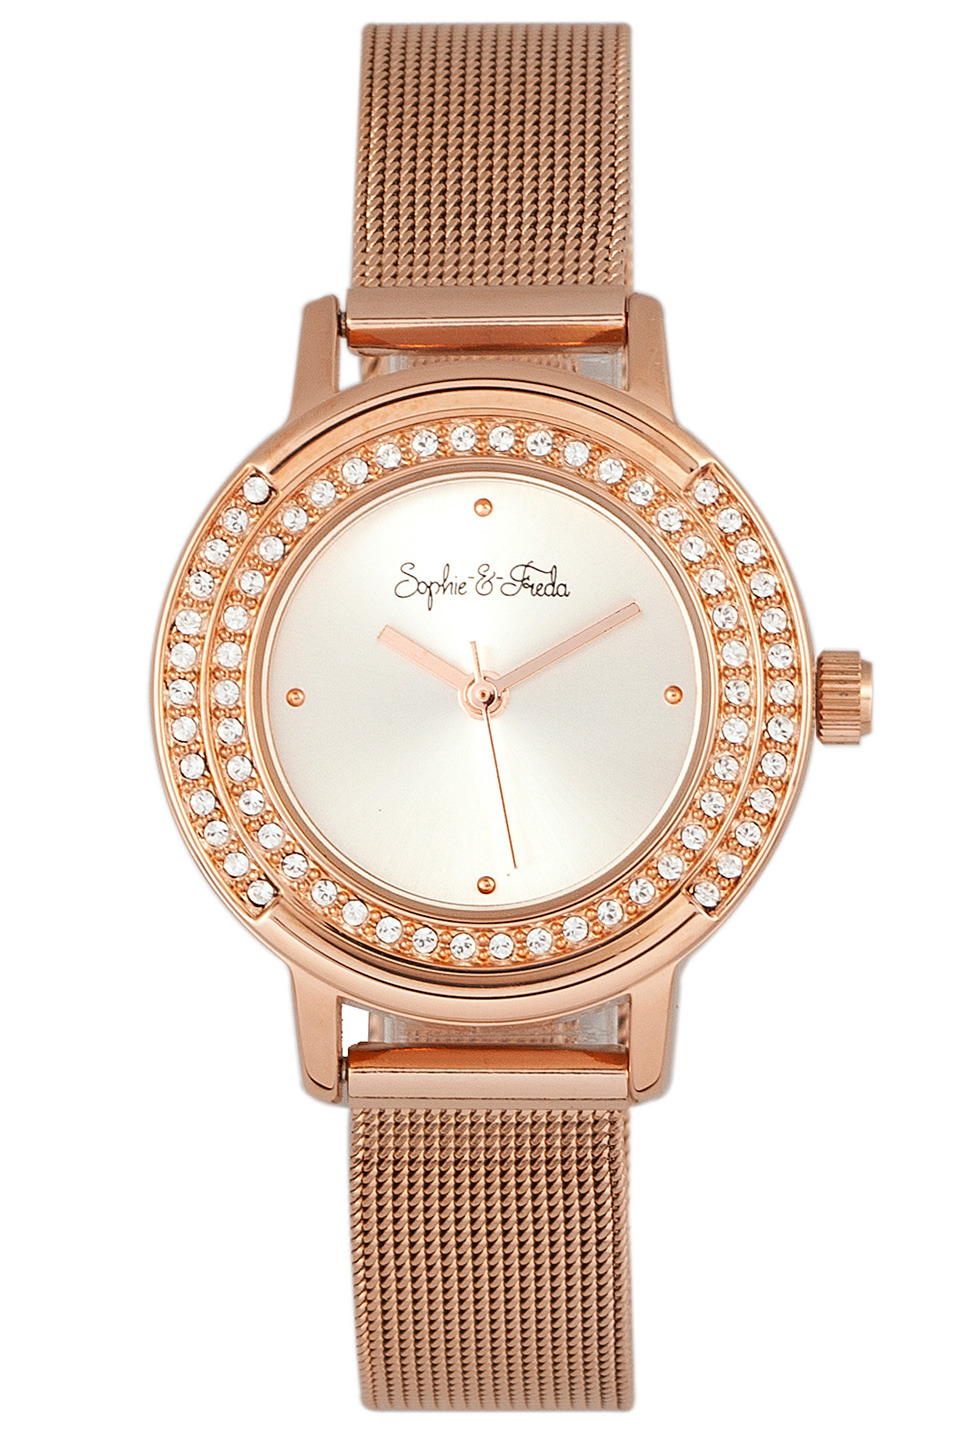 Cambridge Watch with Swarovski Crystal in Silver & Rose Gold